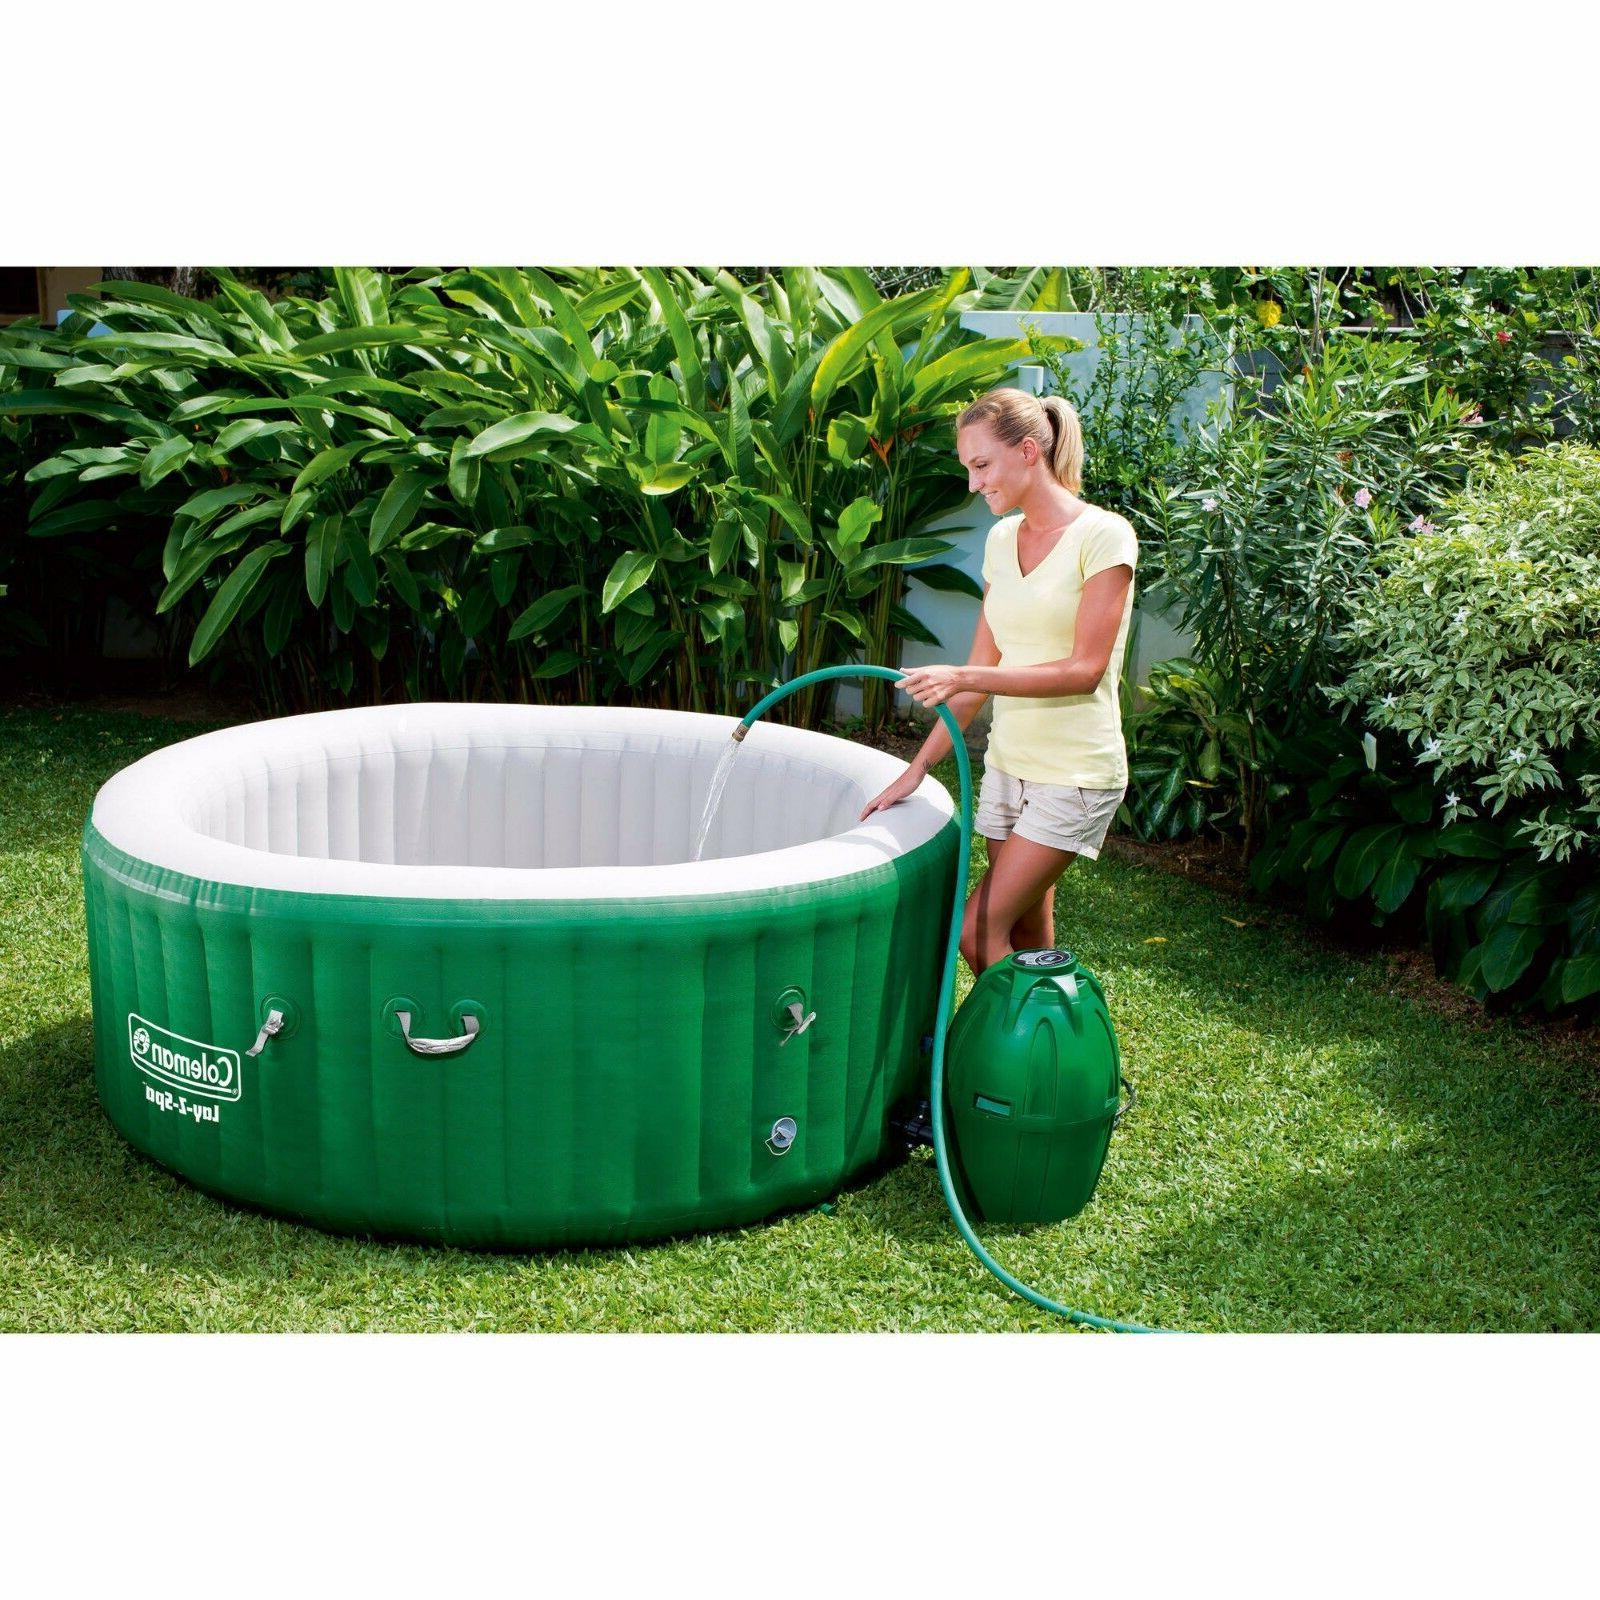 Portable Hot Tube Lay-Z Relax For People